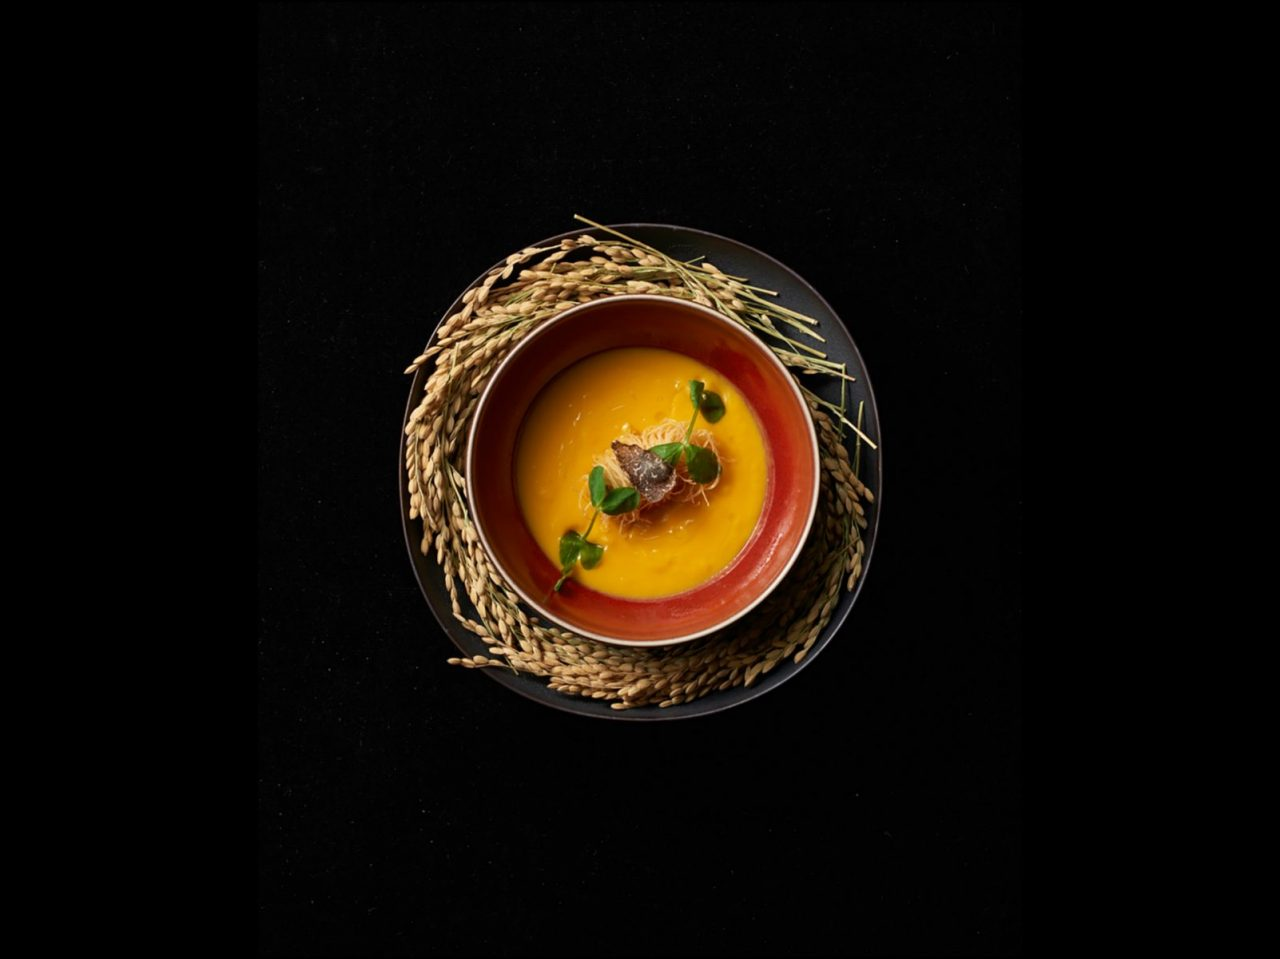 Asia's 50 Best: Should it Be About Asian Food?